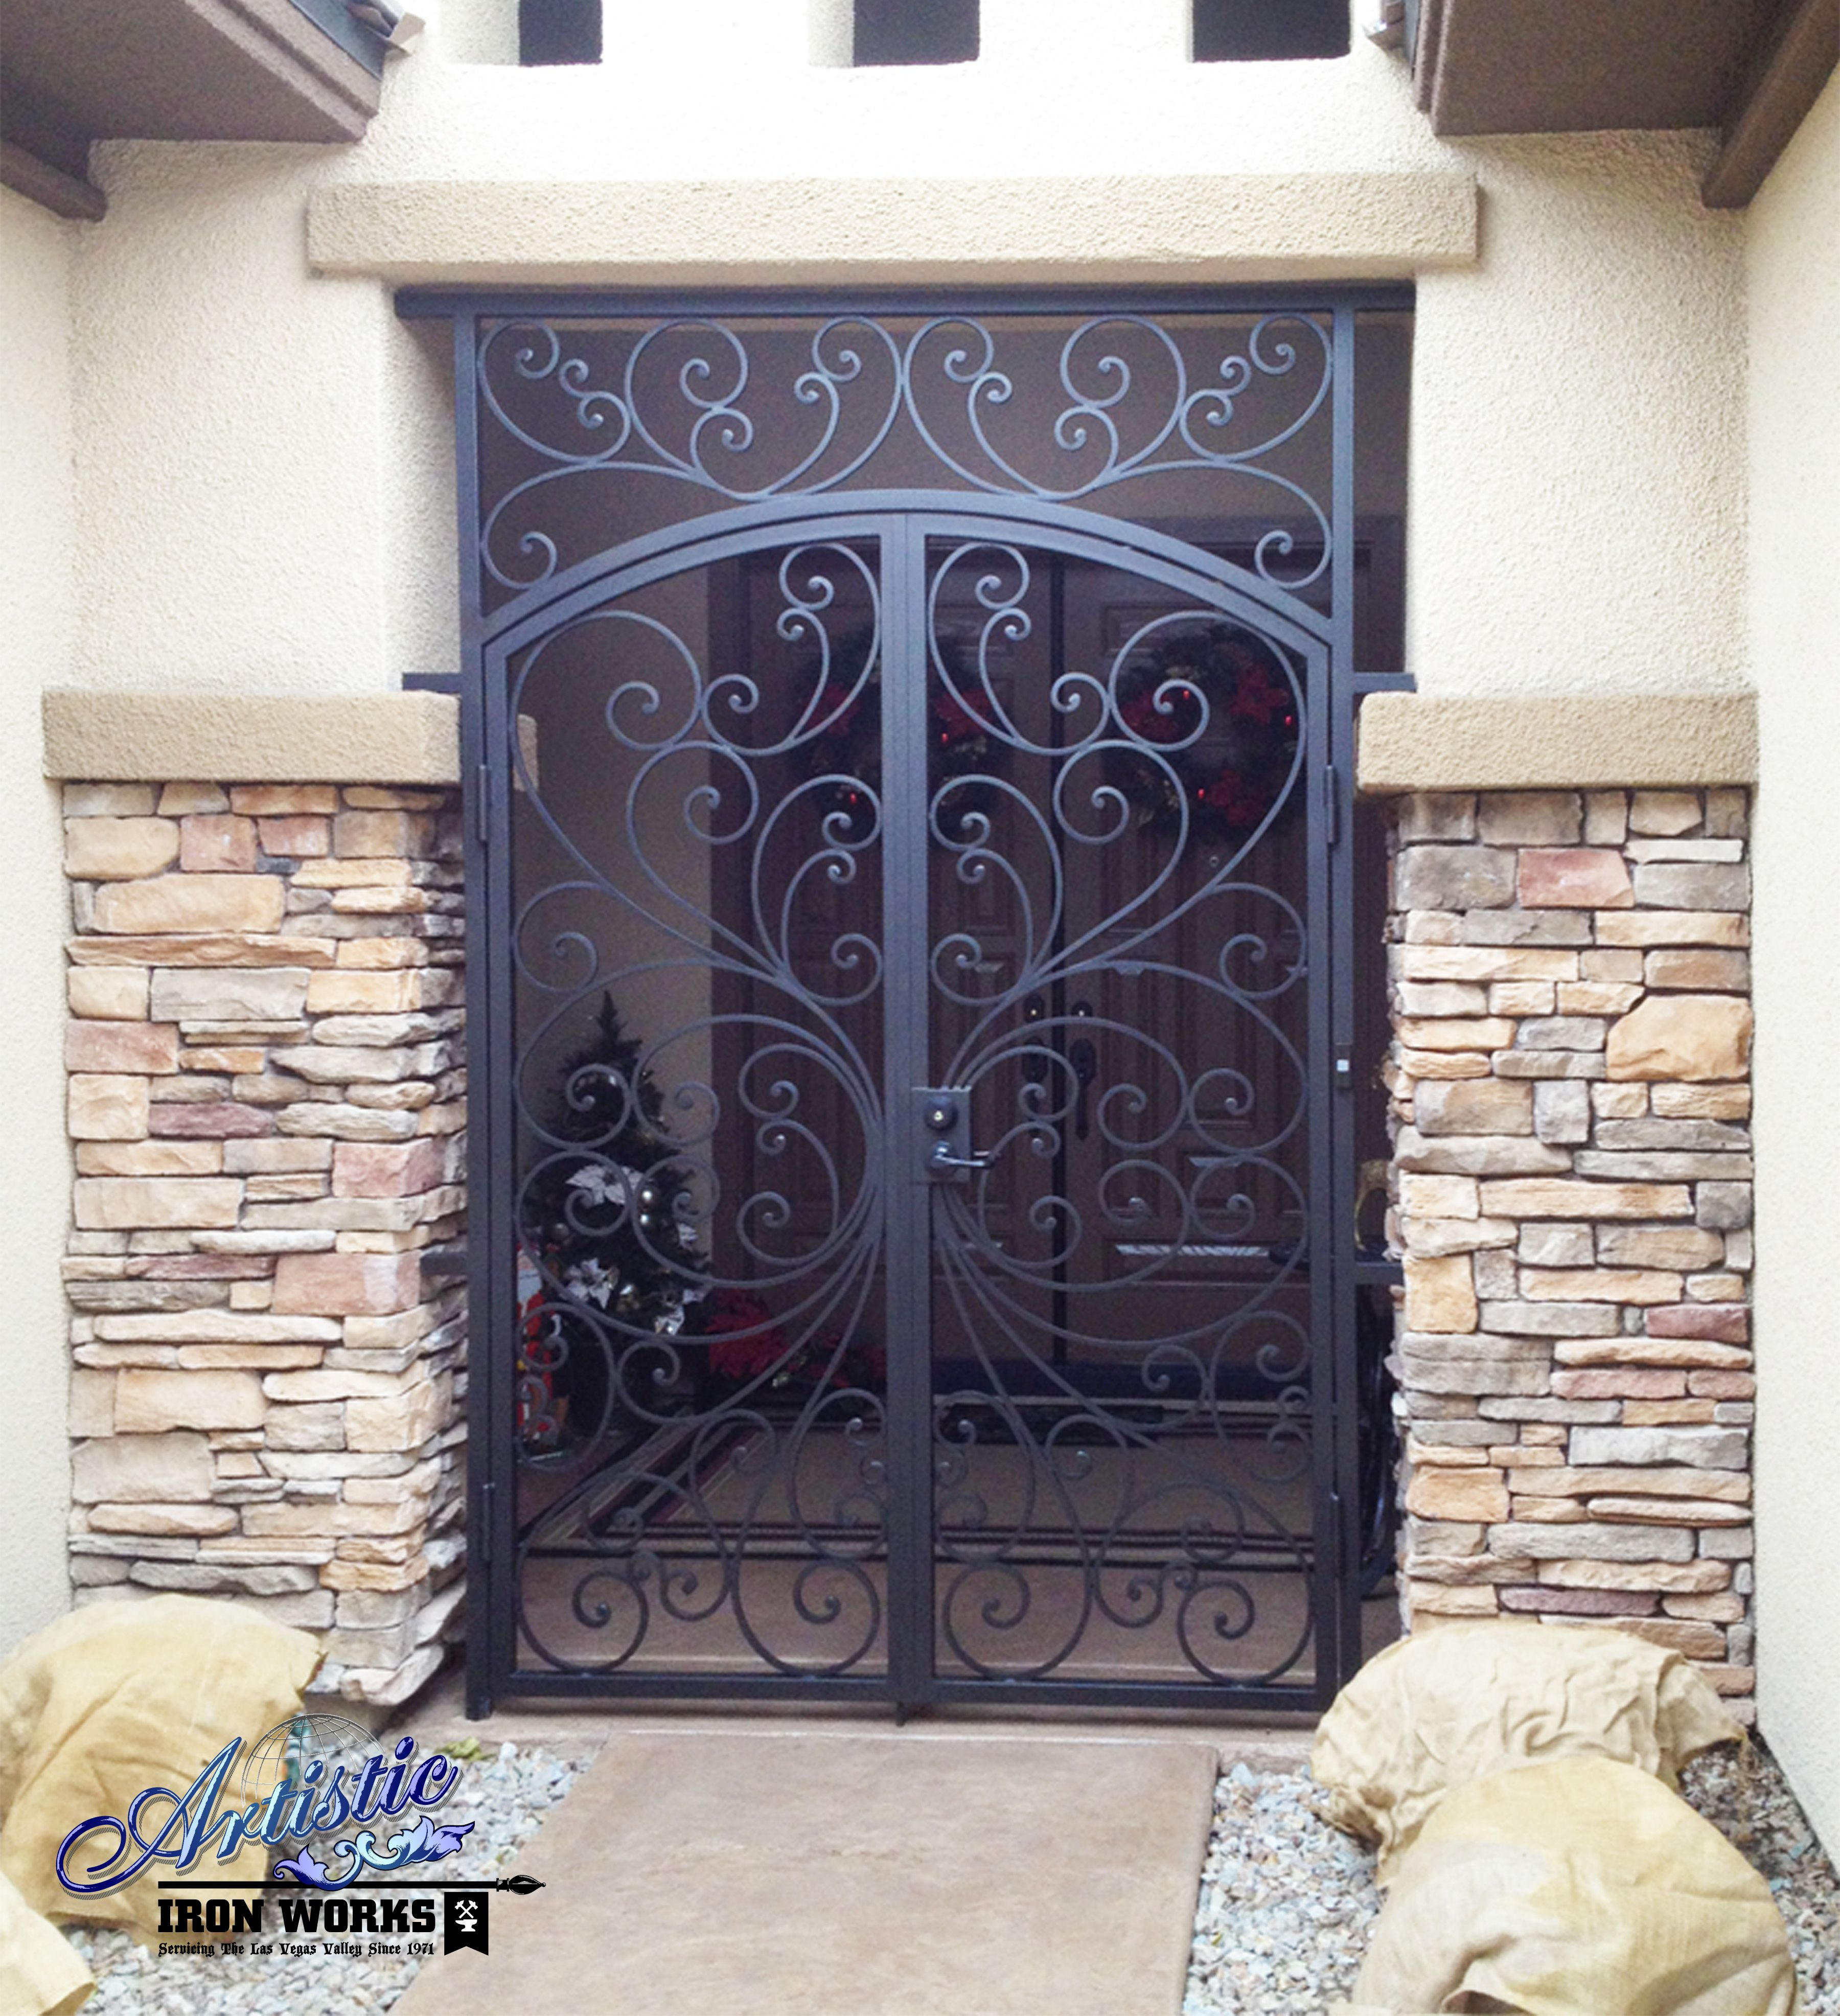 Ricci Decorative Wrought Iron Entryway Ew0328 With Images